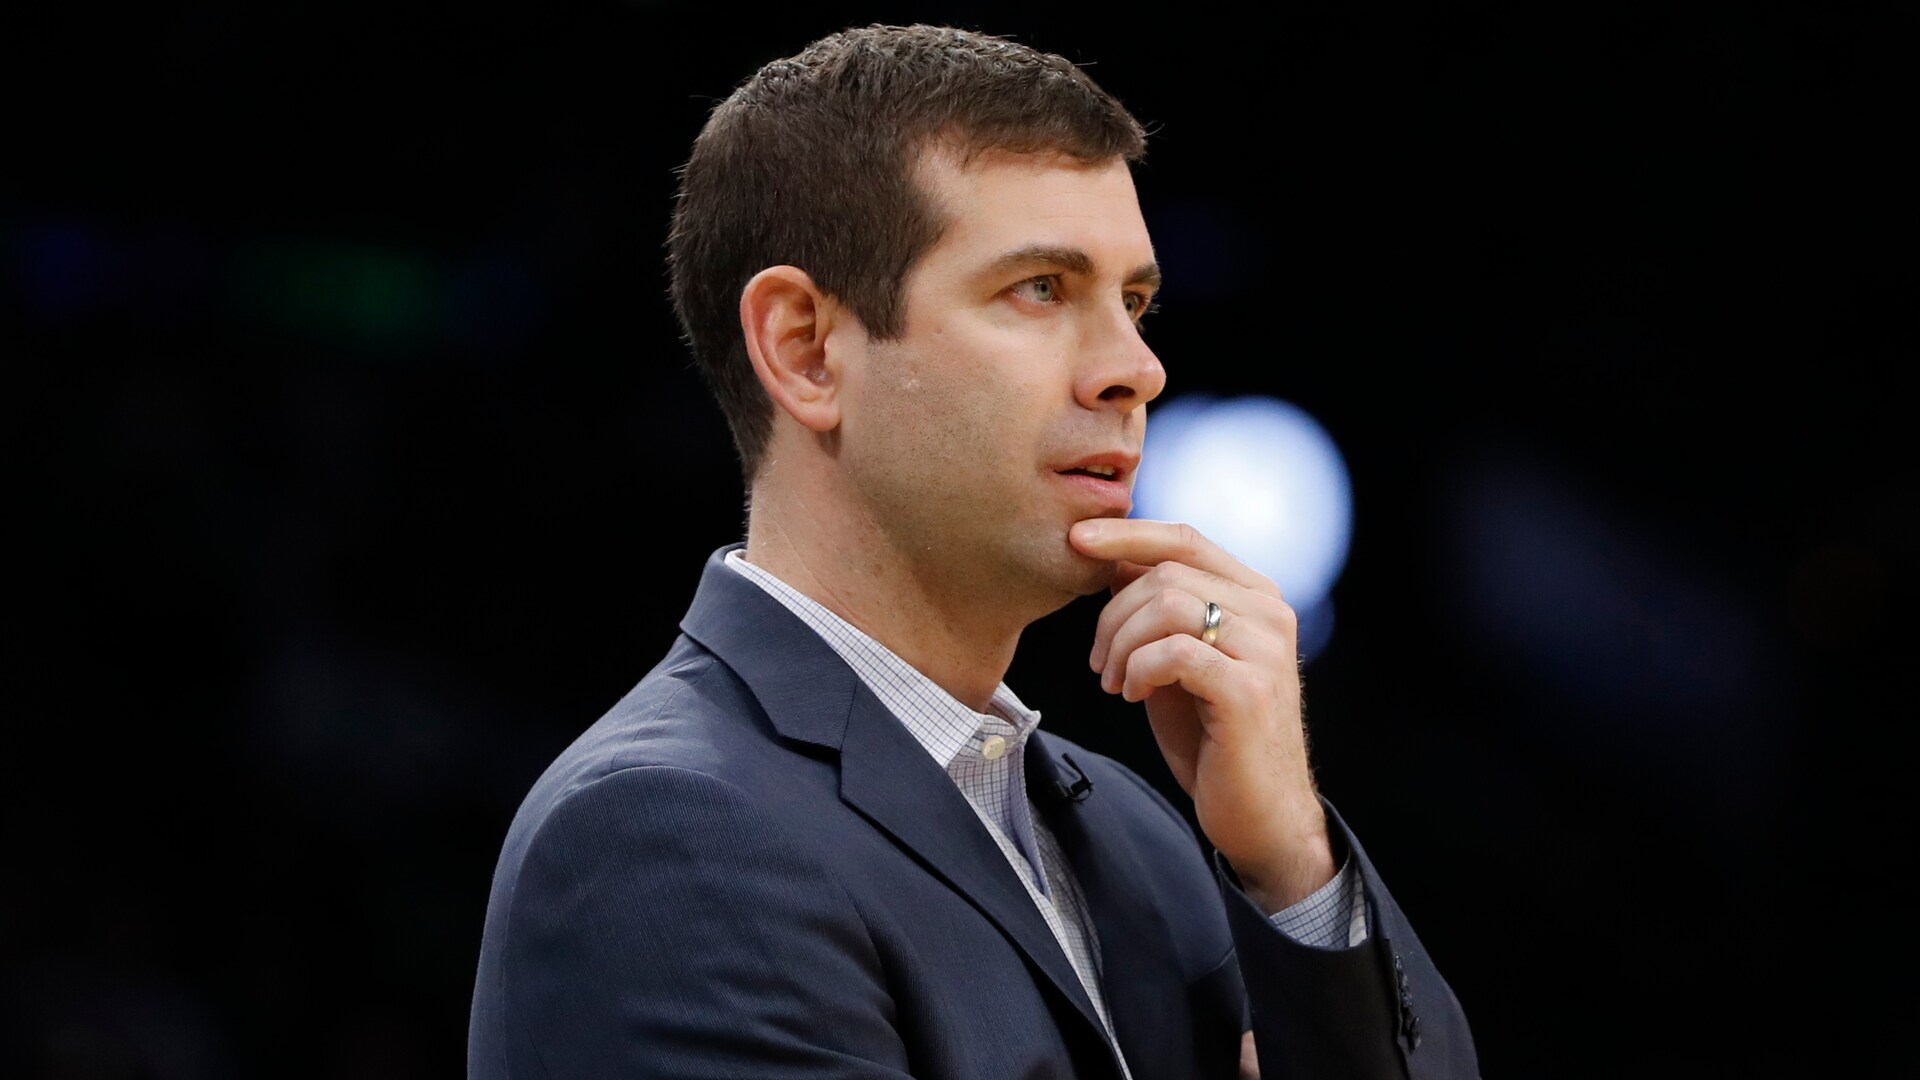 Celtics sign Brad Stevens to contract extension